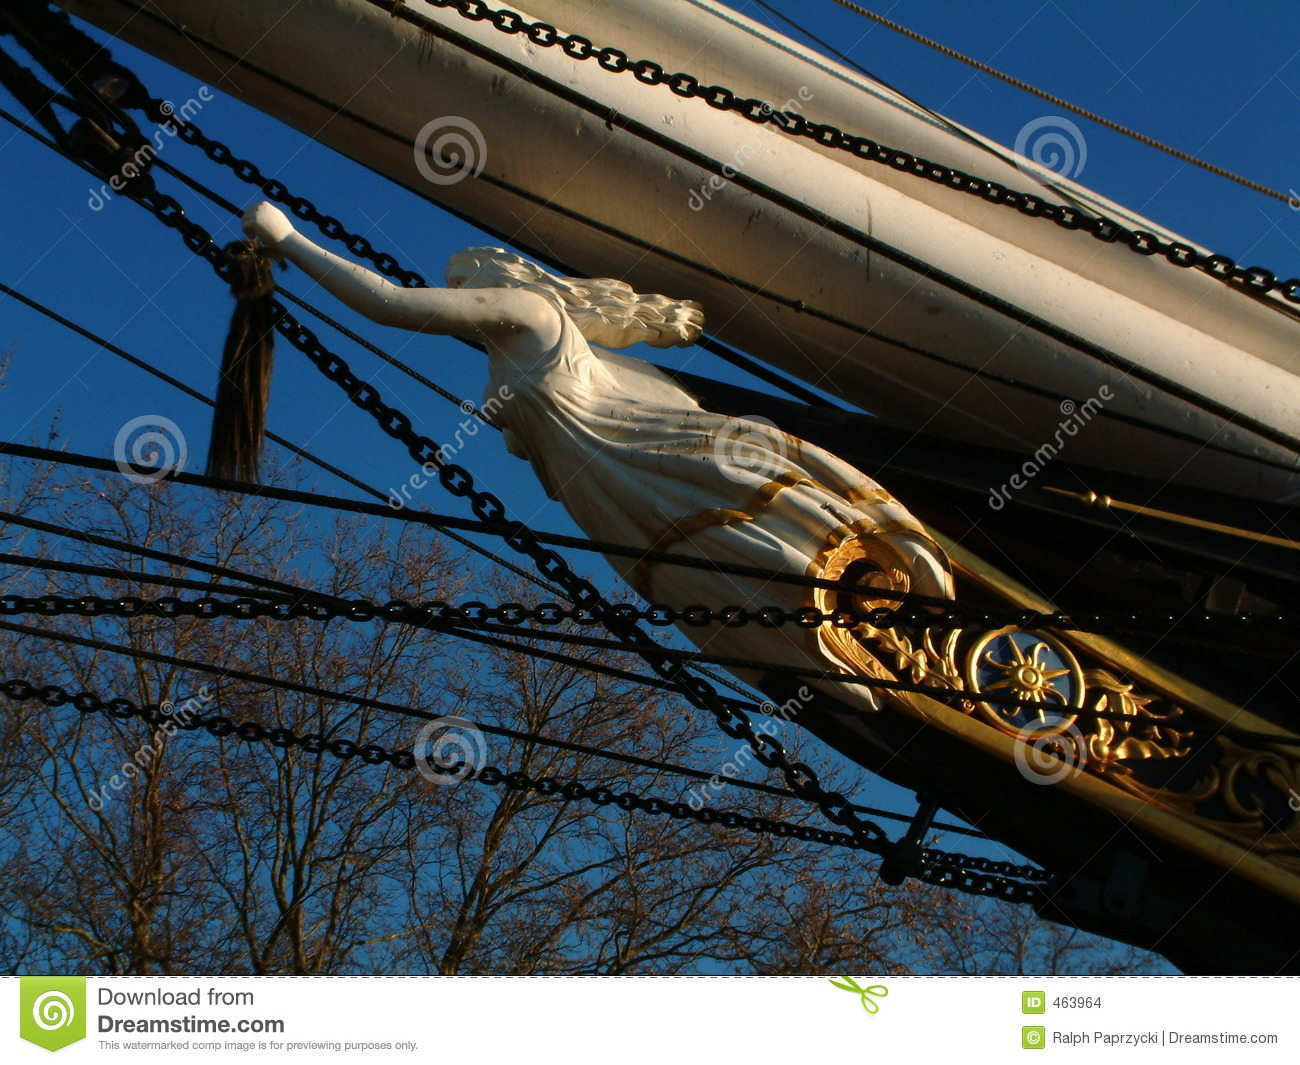 Figurehead of Cutty Sark, Greenwich, London